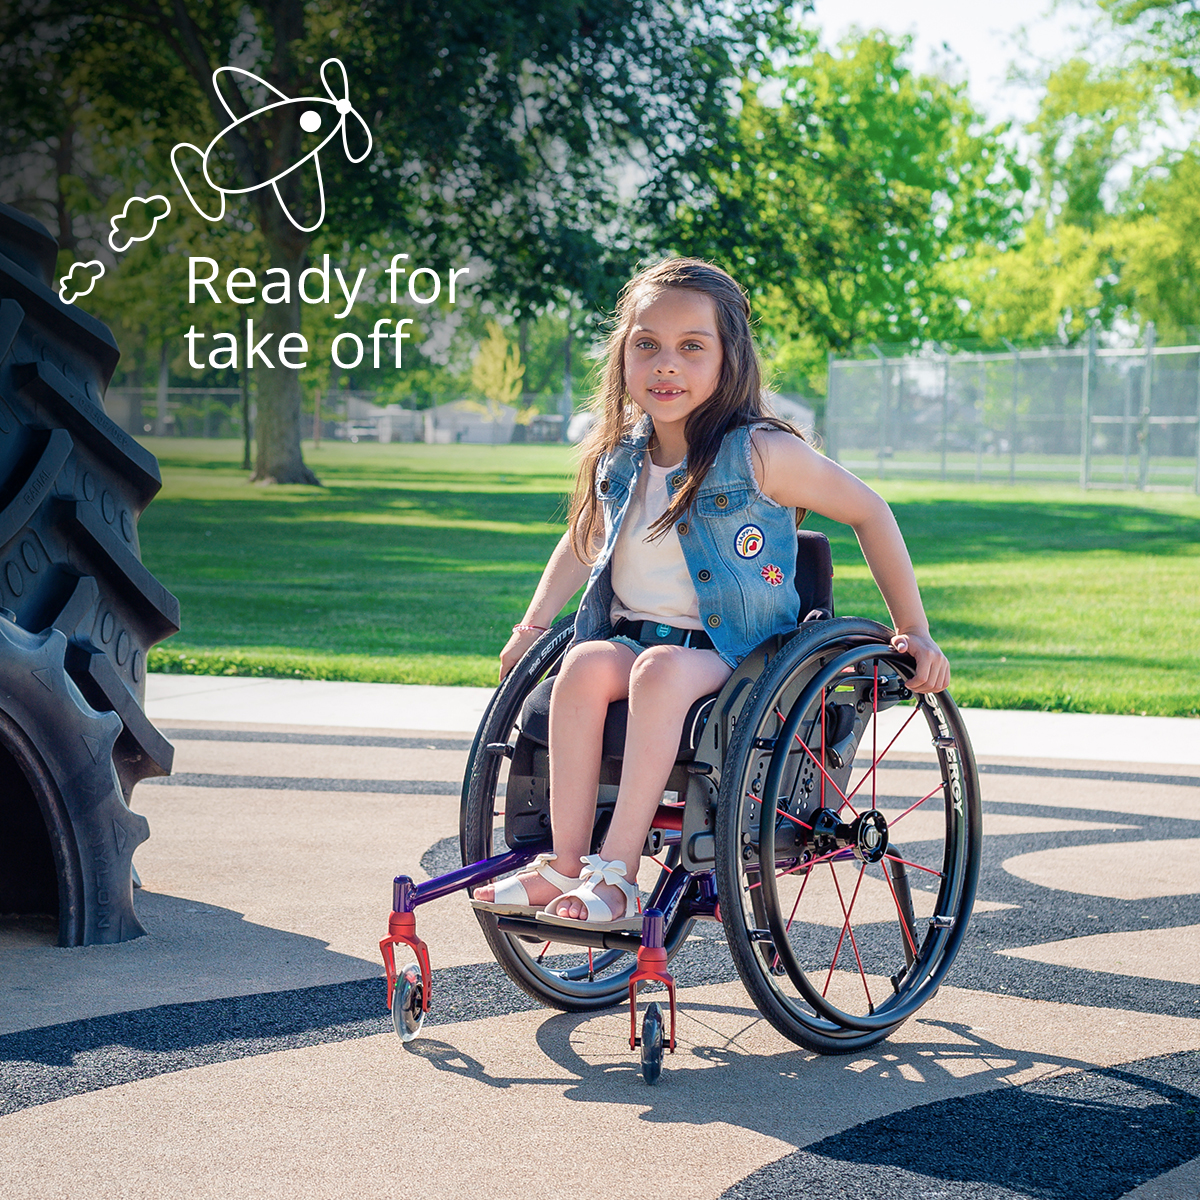 A girl on a Wheelchair is ready for her take off.